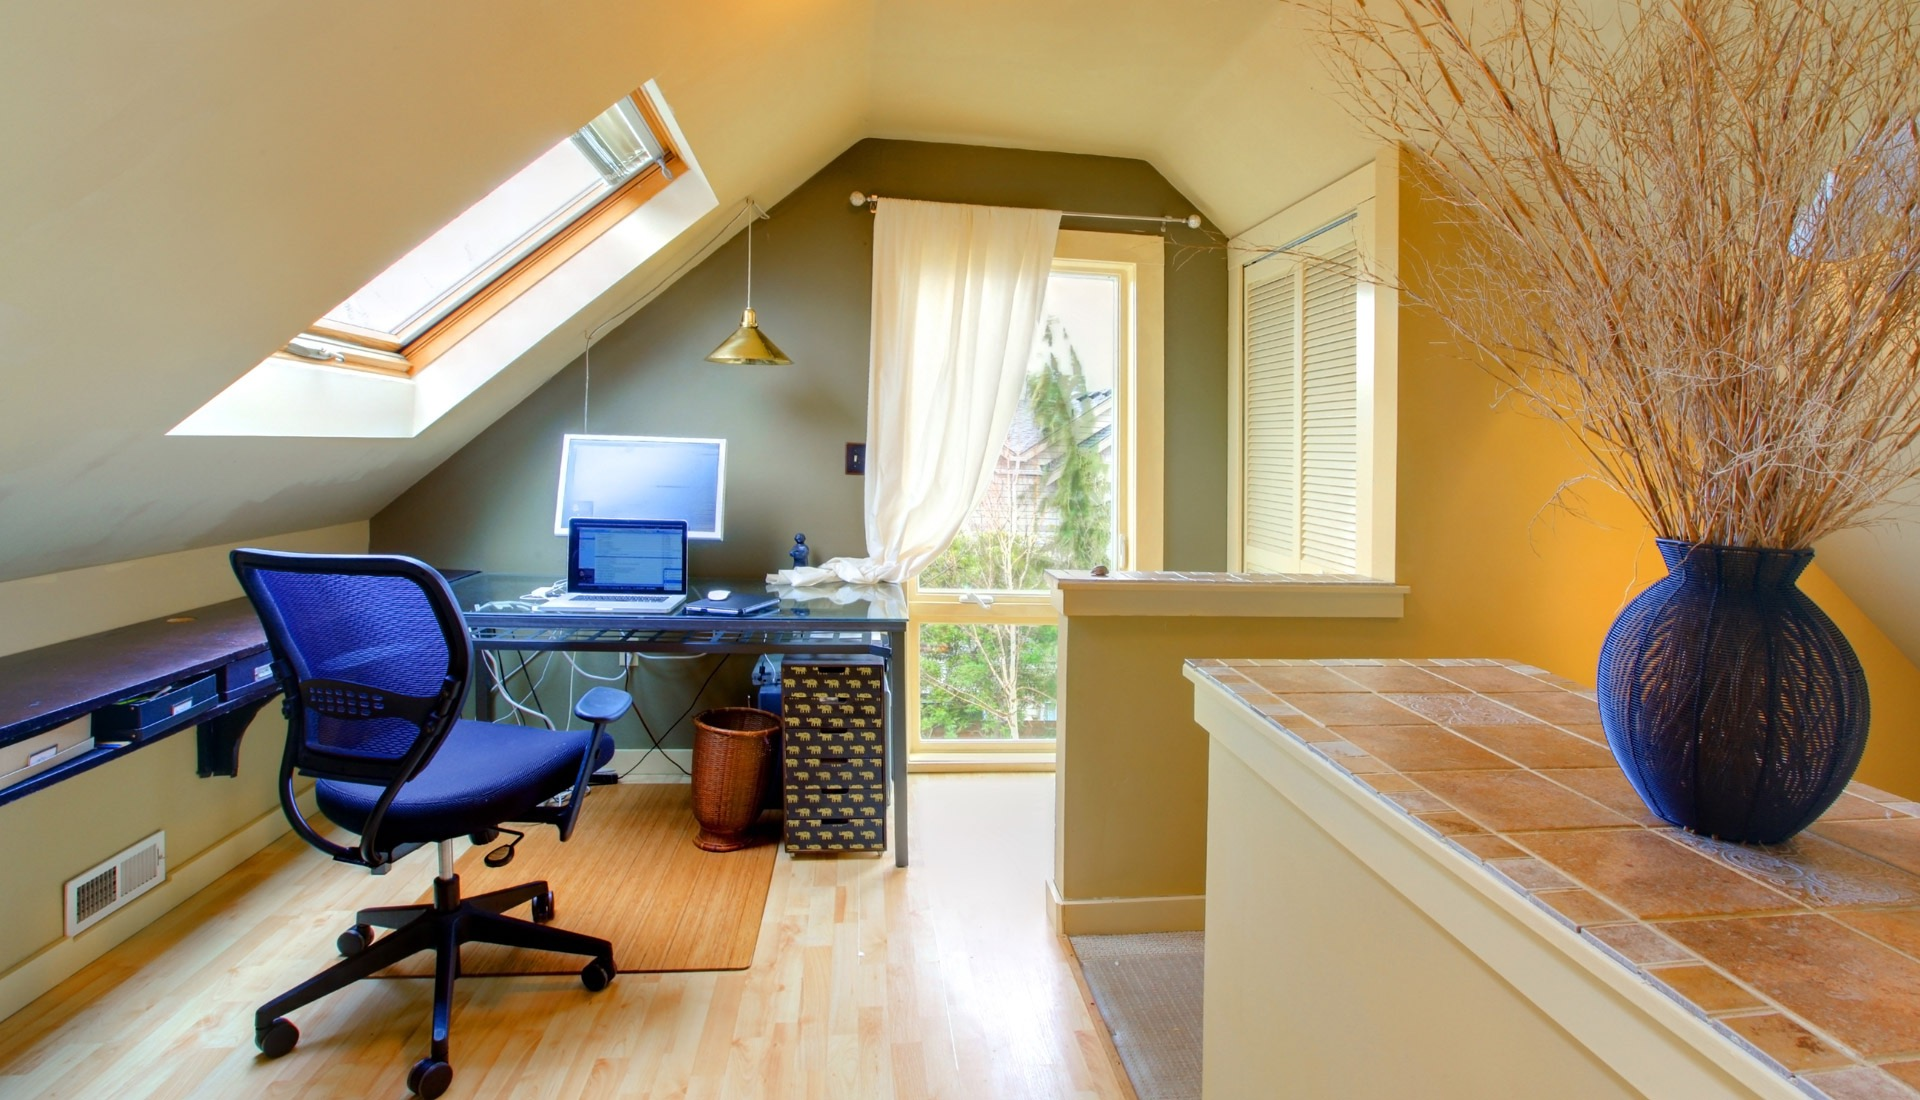 Attic Interior Remodel To Modern Workplace (Image 6 of 26)